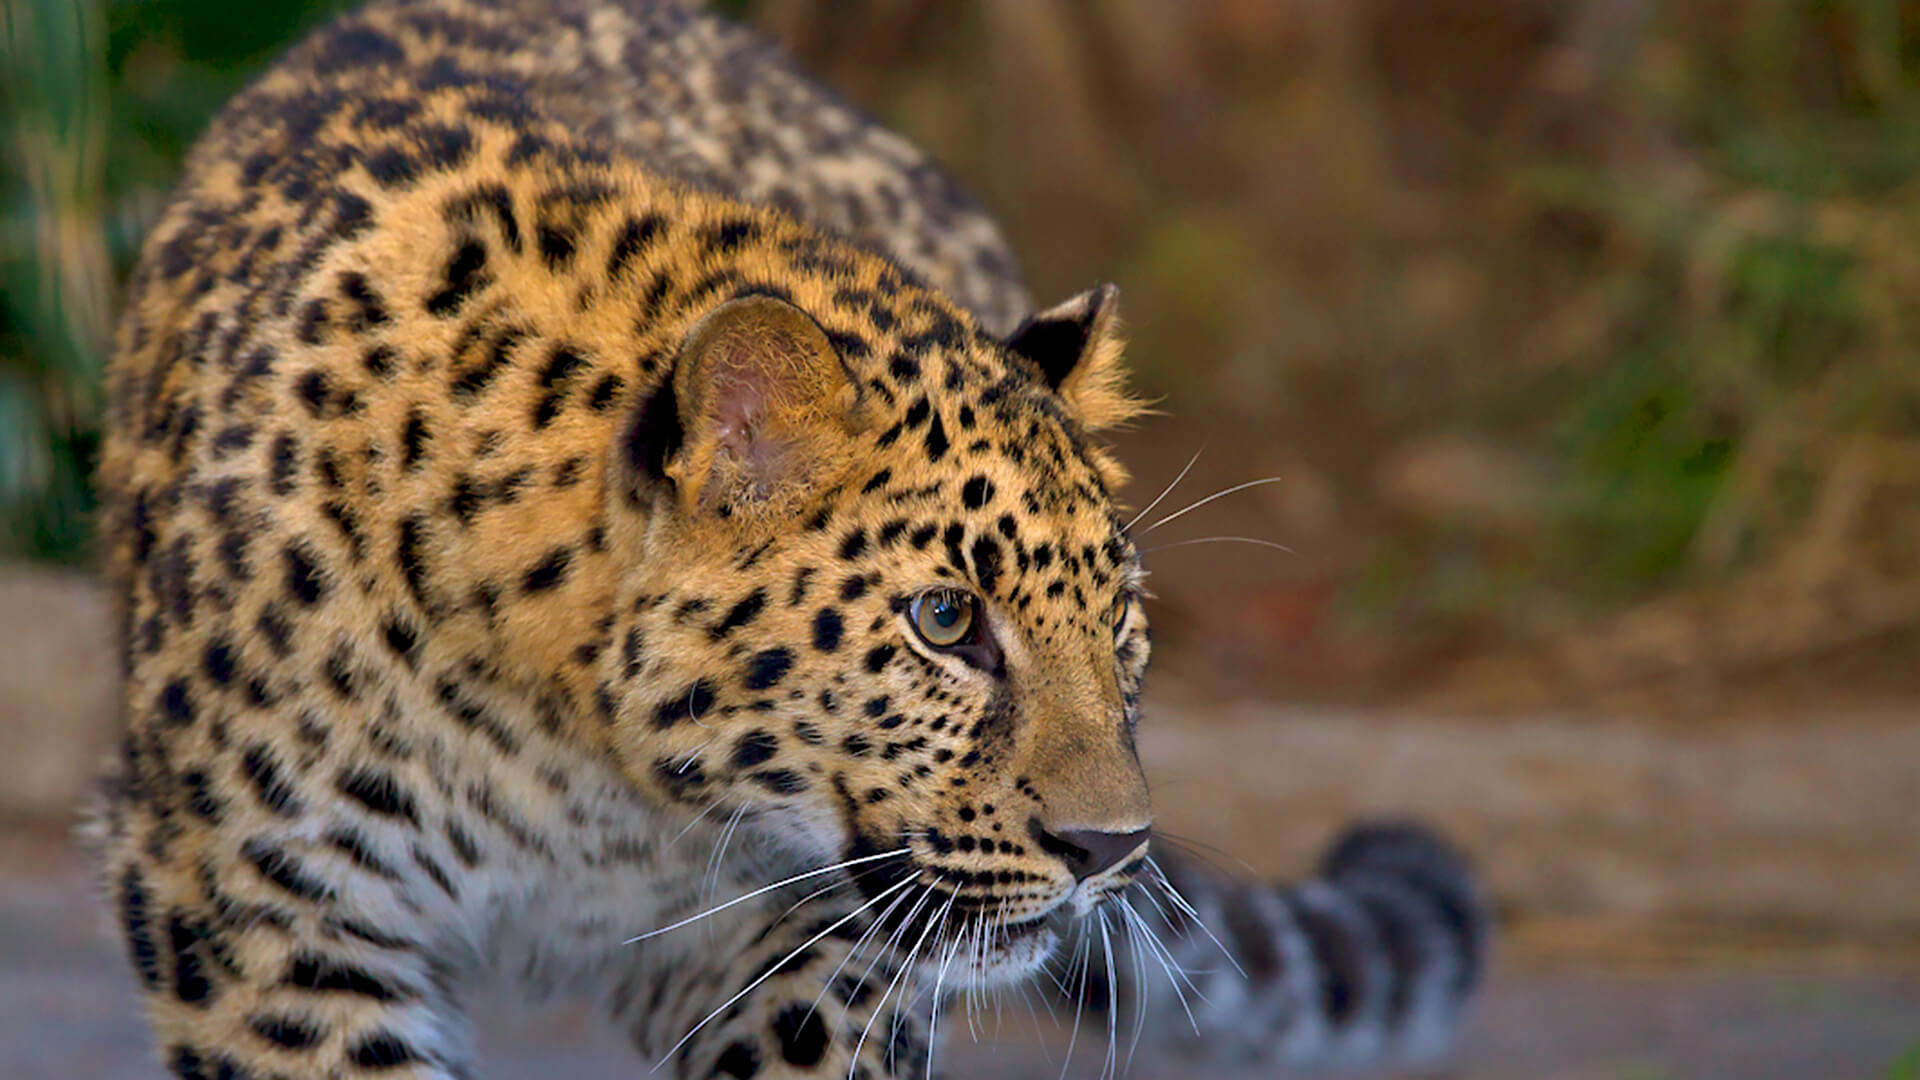 Amur leopard looking to the right with blurred jungle background